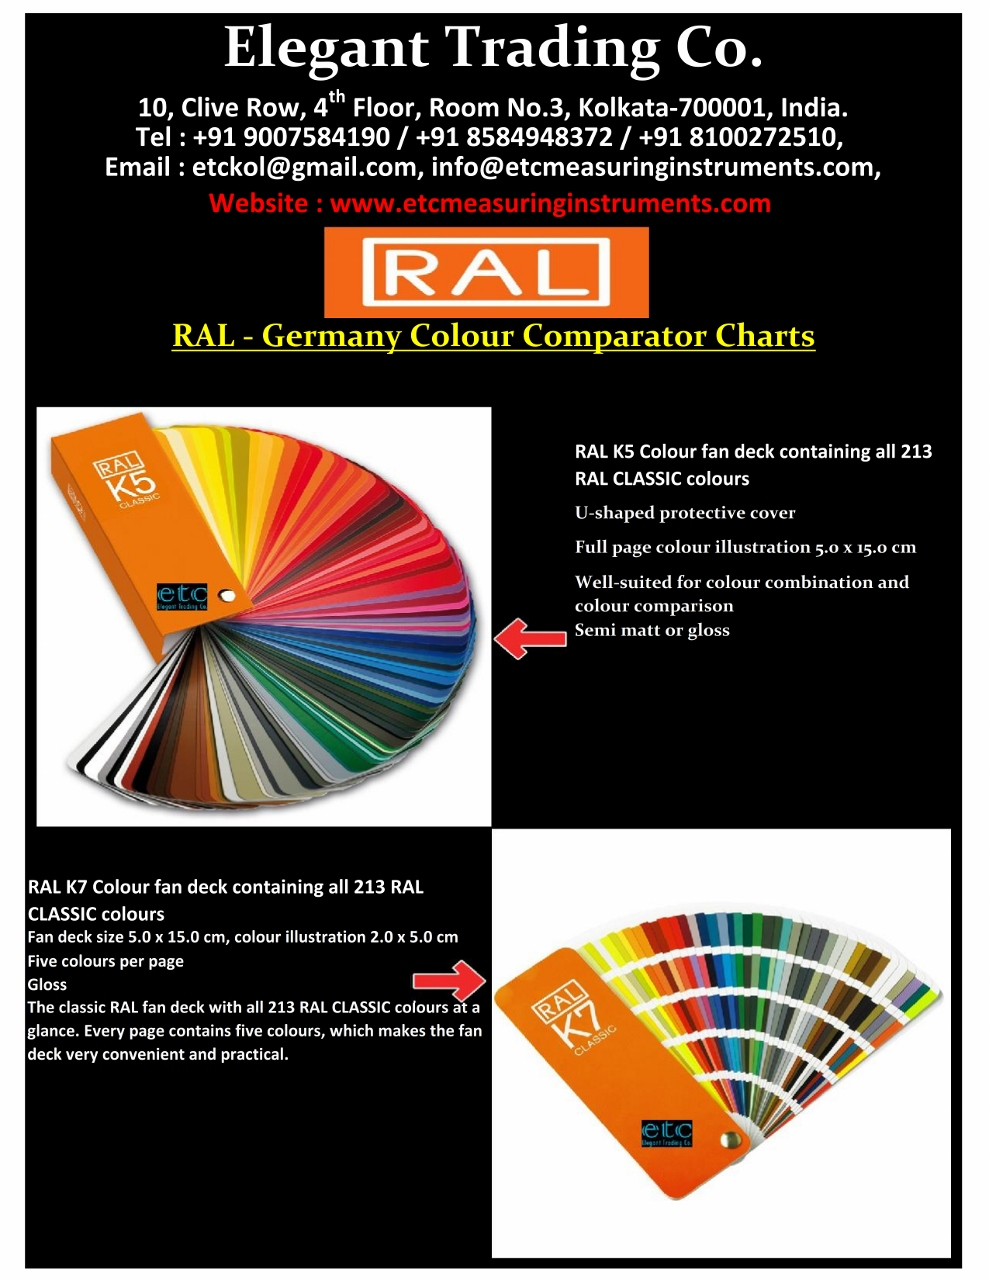 RAL Colour Comparator Chart_0001